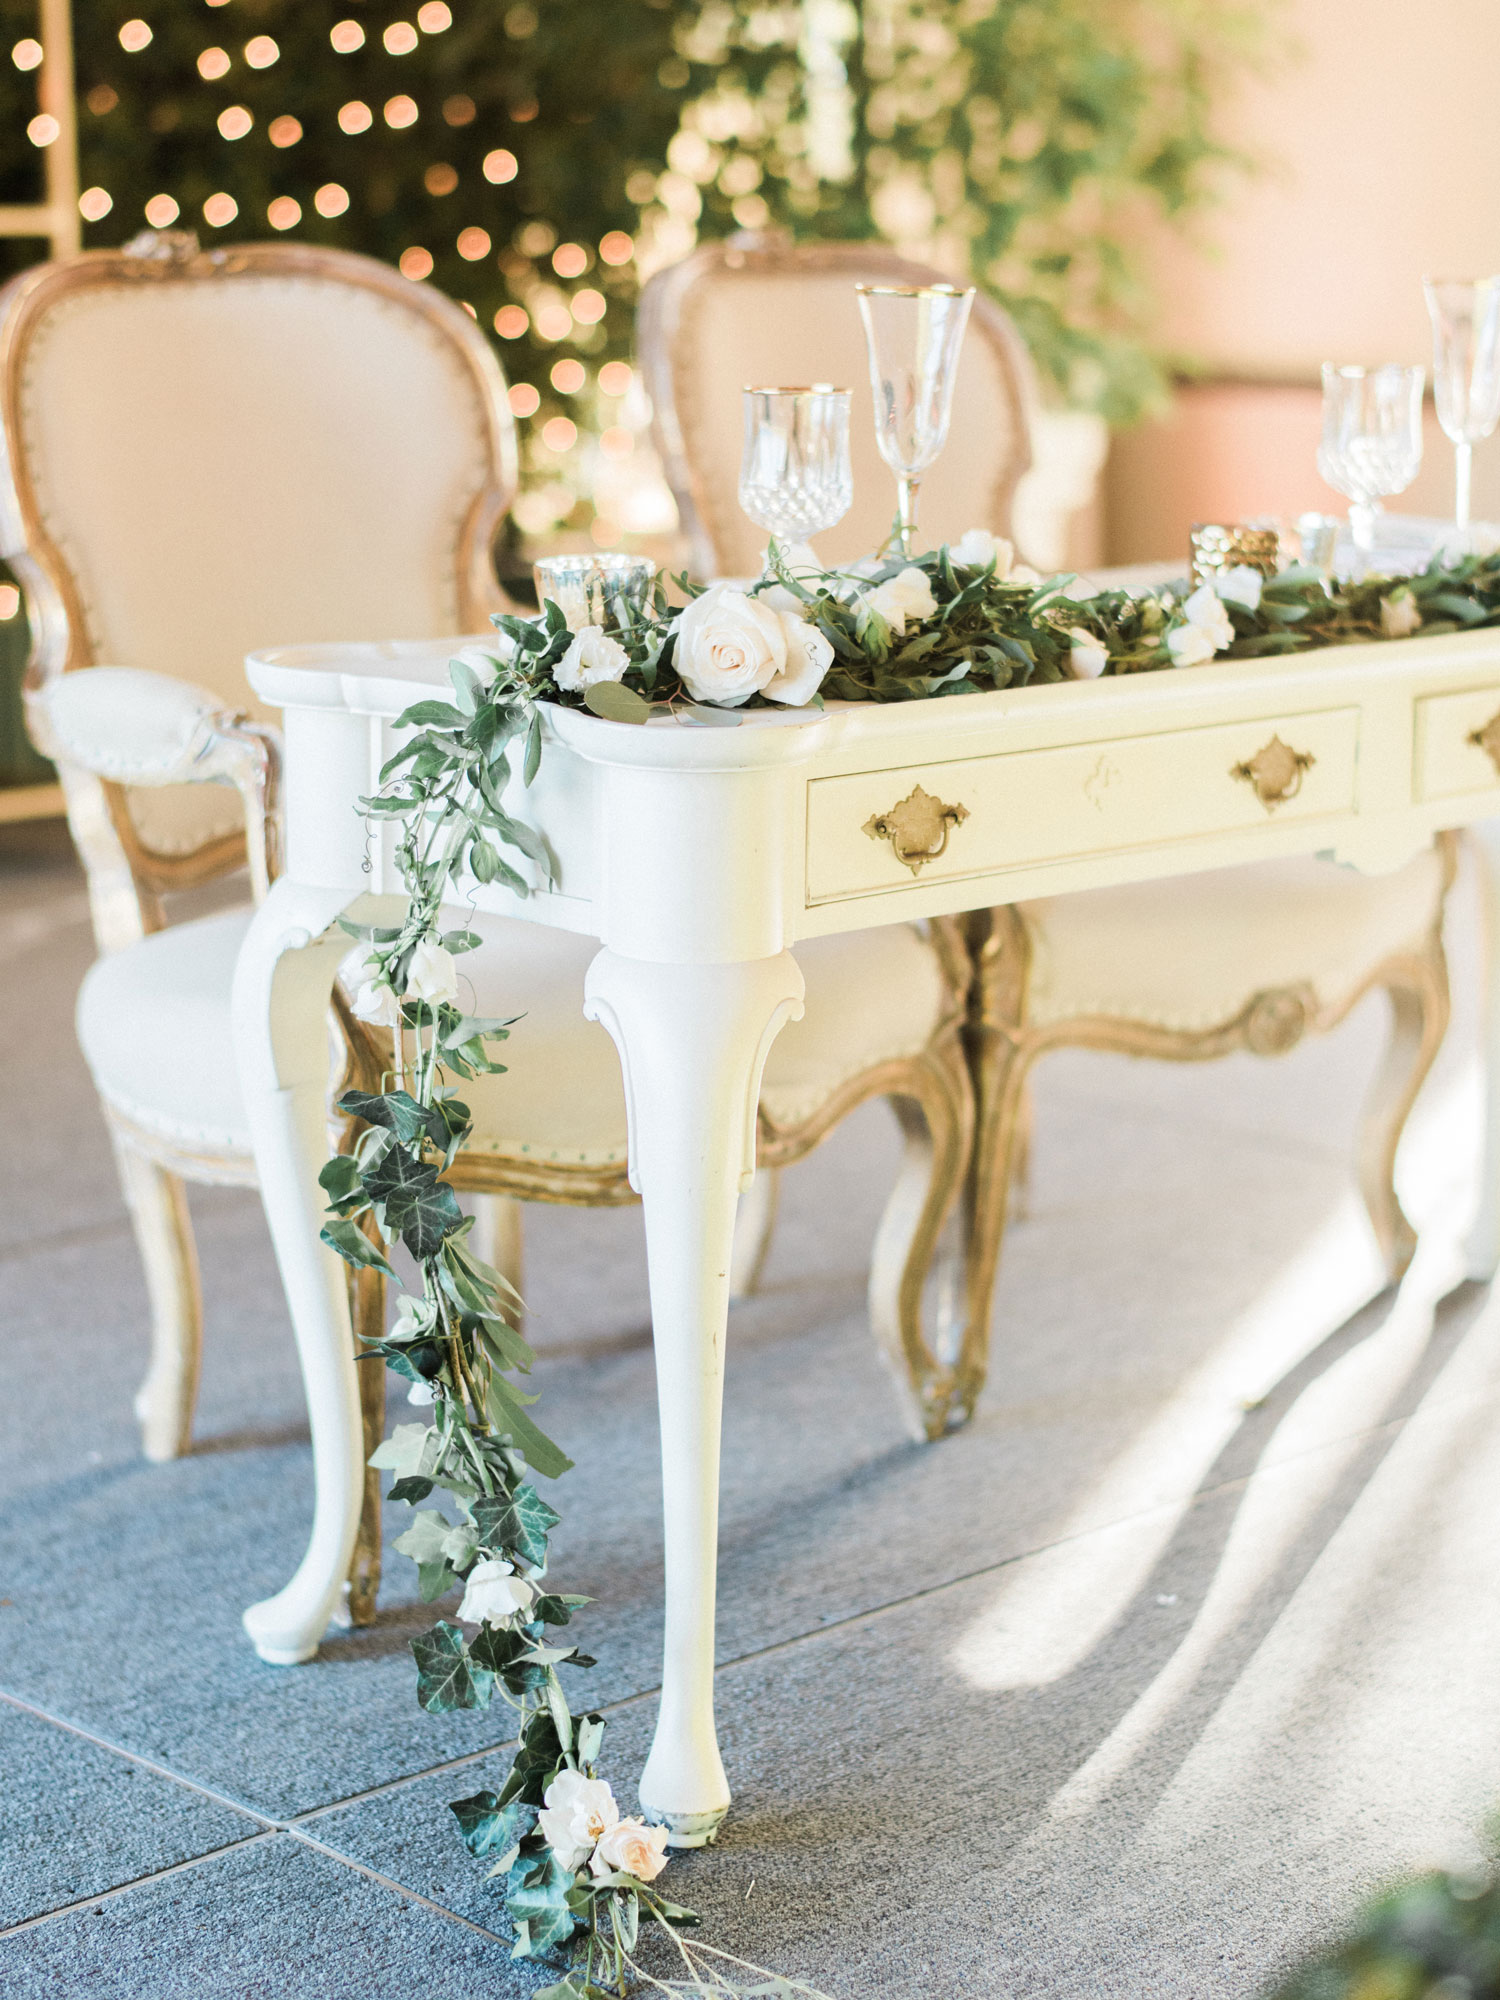 pros and cons of having a sweetheart table, should you have a sweetheart table